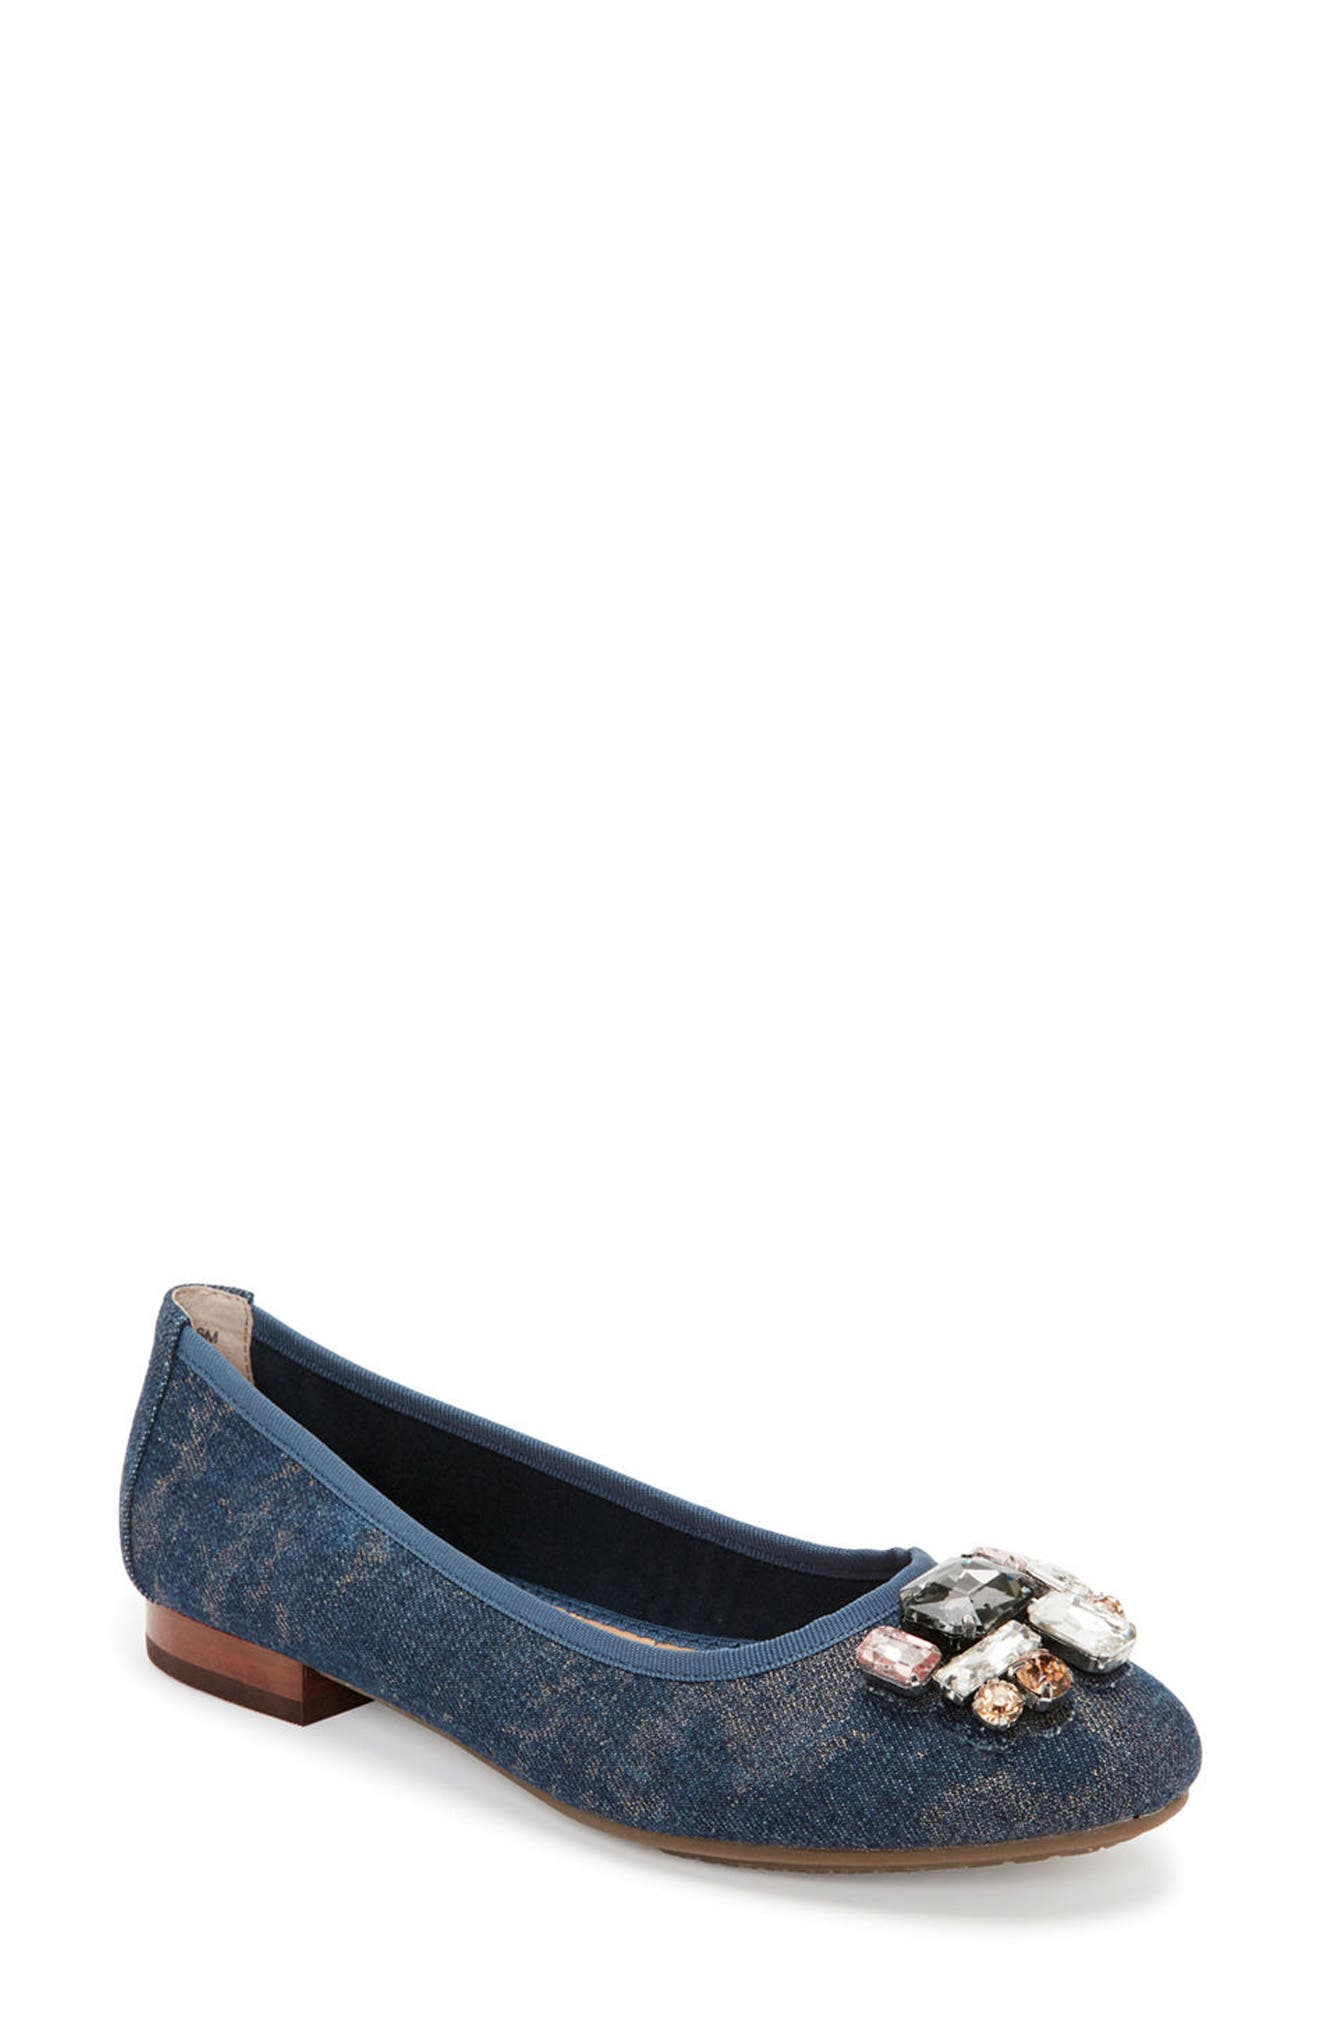 Sapphire Crystal Embellished Flat,                             Main thumbnail 1, color,                             Blue Champagne Denim Fabric